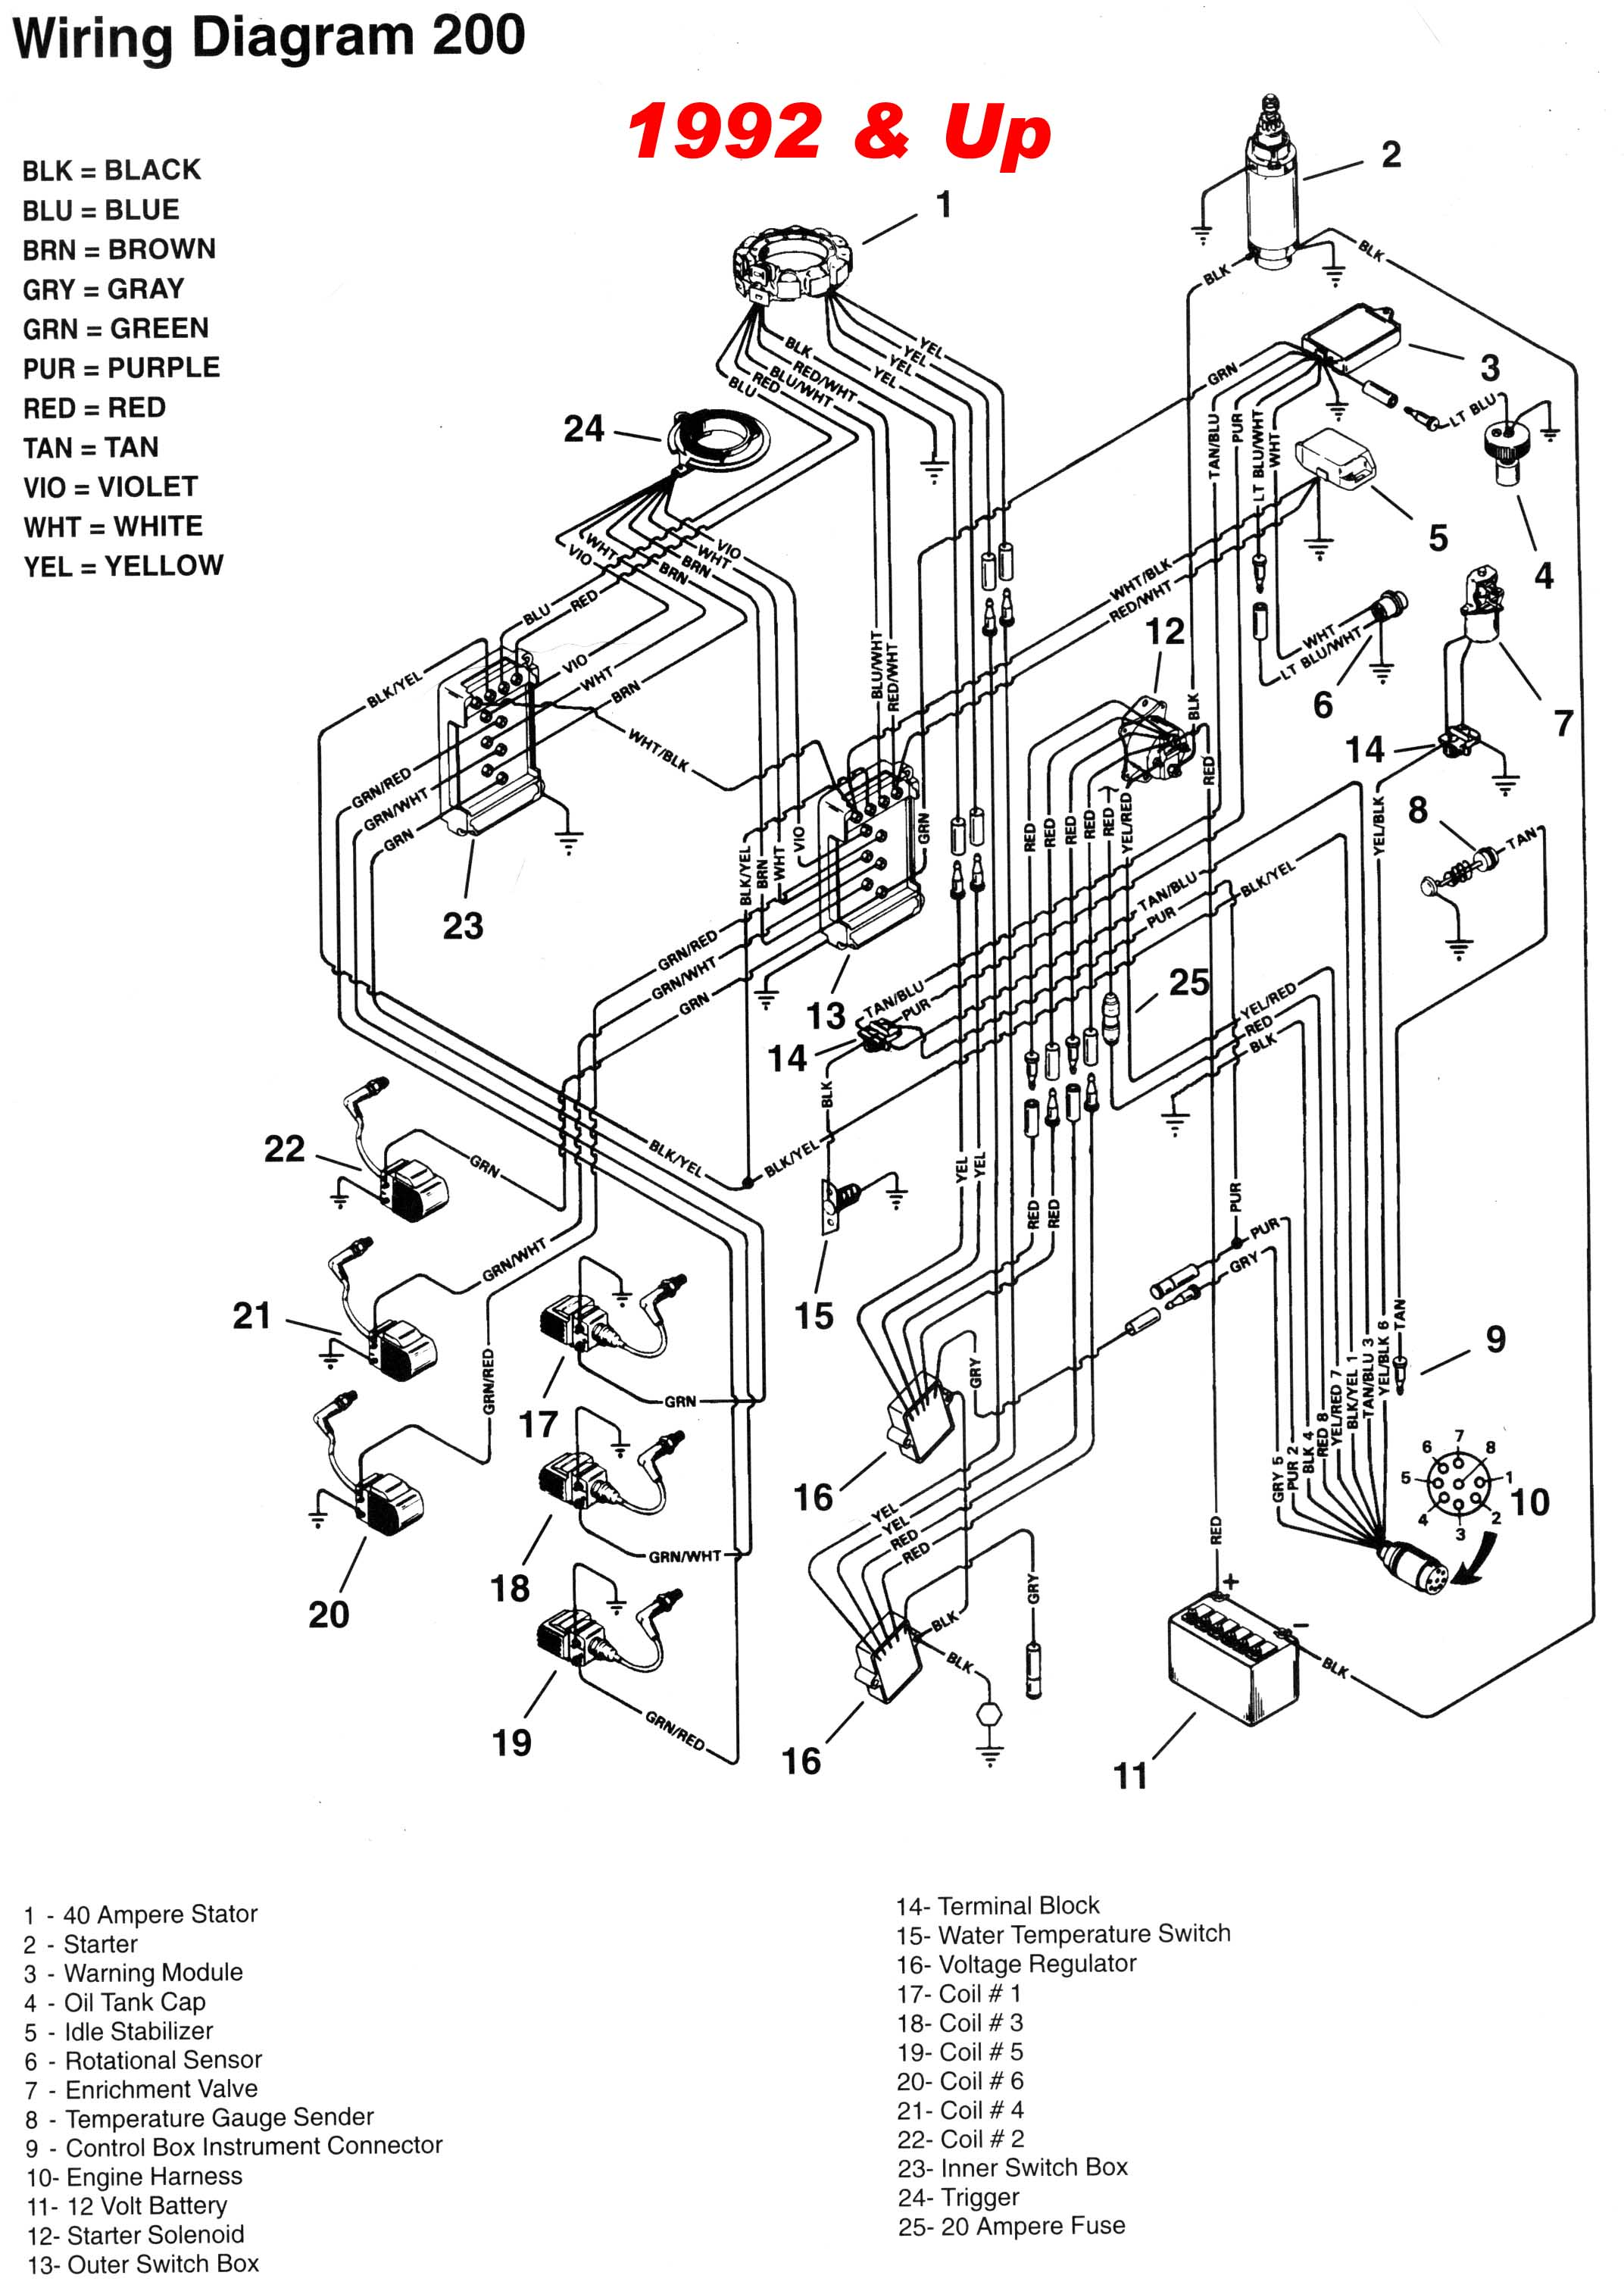 Mercury Mariner Stator Wiring Diagram Data Schema Harness Design Guide Outboard 2 5 And 3 0l V6 Gearcase Faq Saturn Astra Electrical